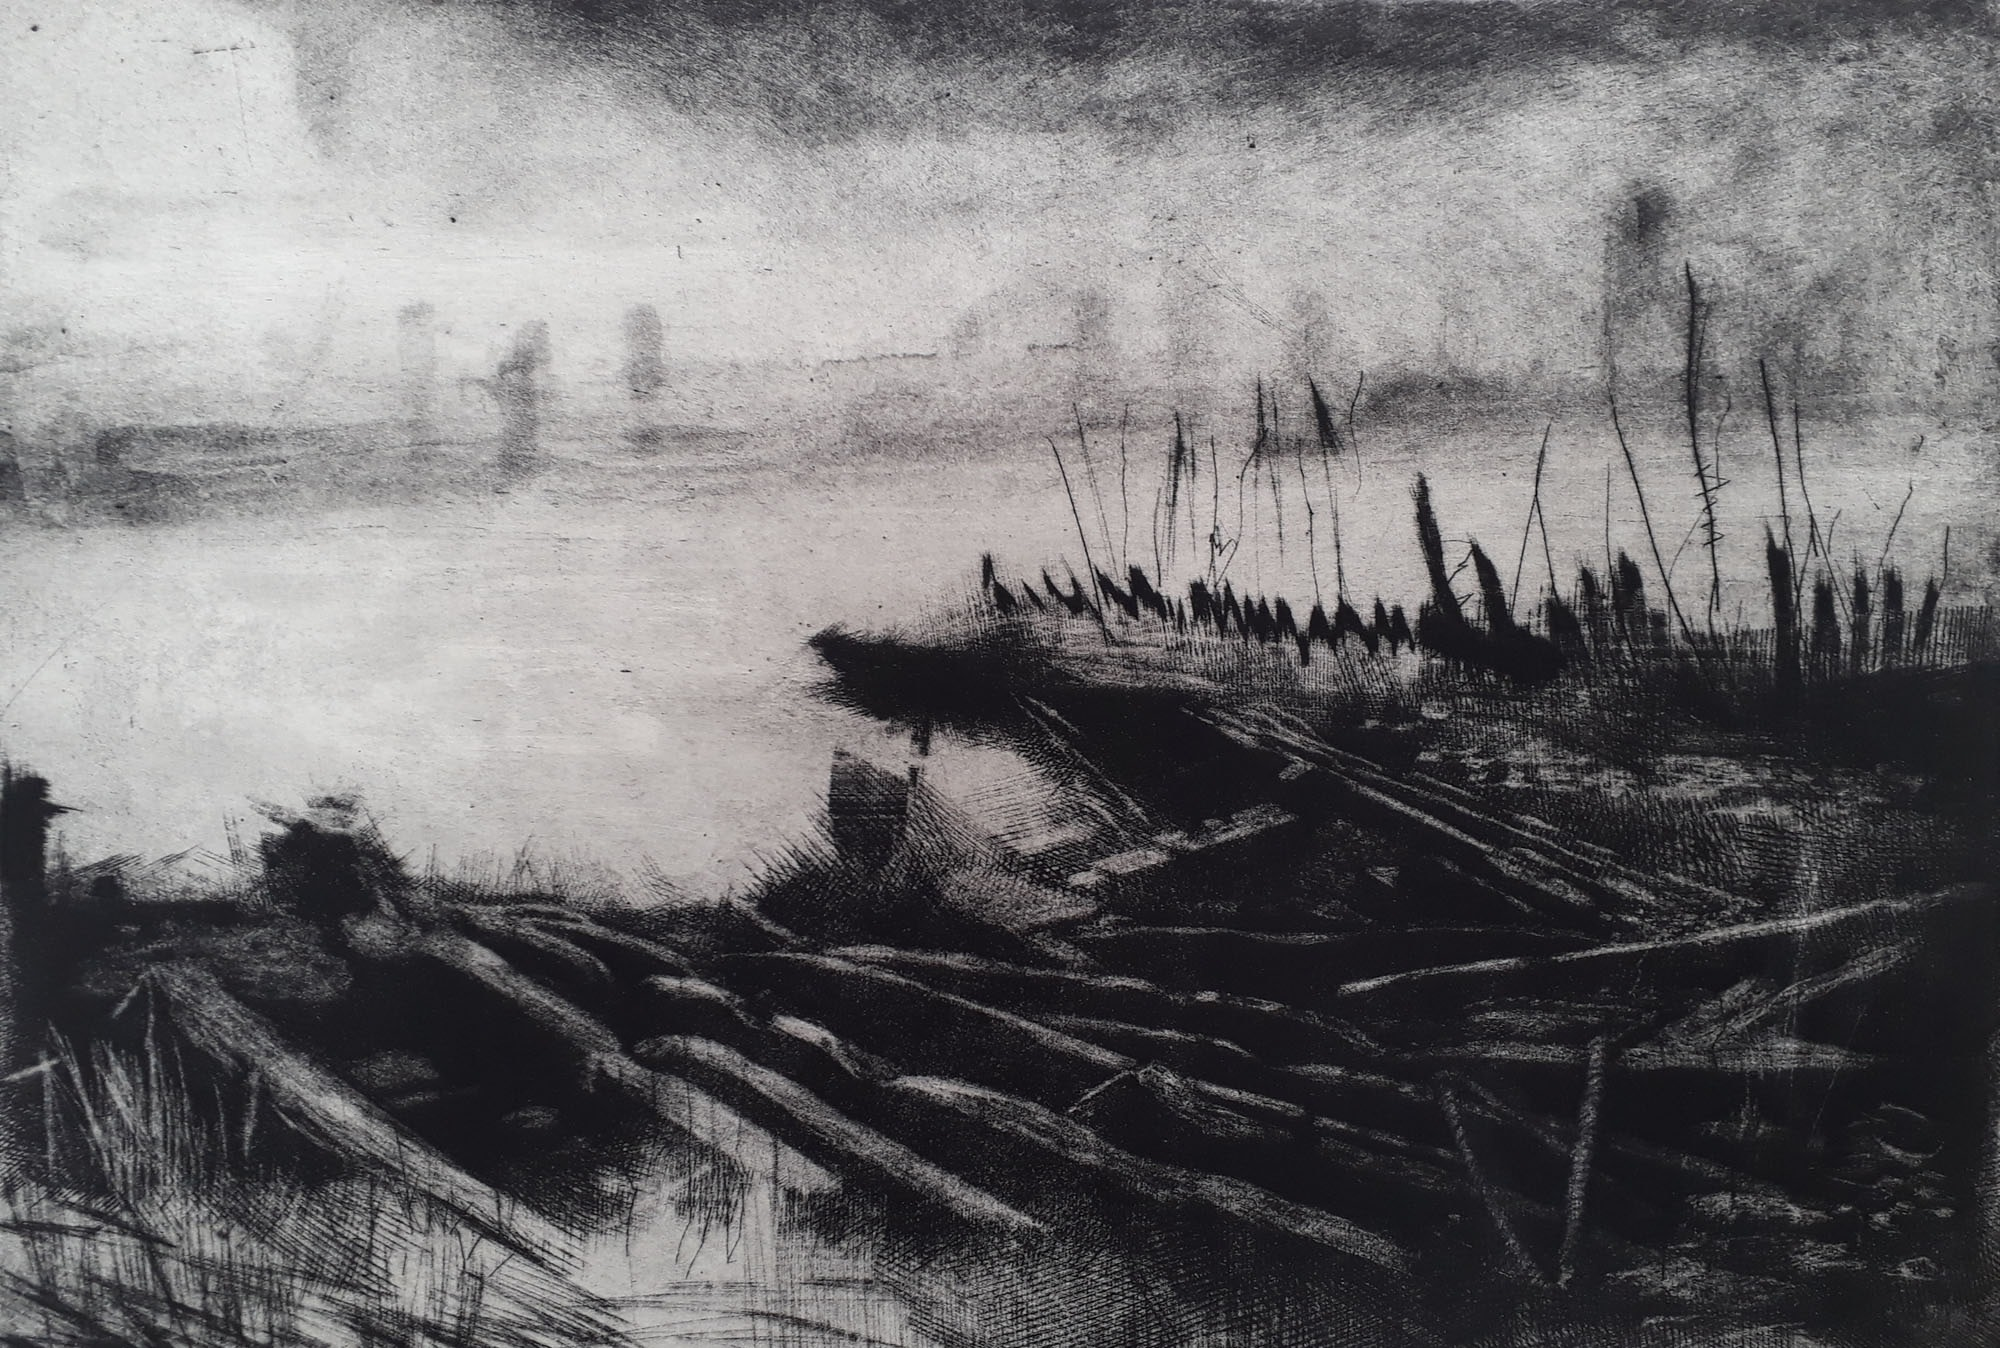 """<span class=""""link fancybox-details-link""""><a href=""""/exhibitions/17/works/image_standalone779/"""">View Detail Page</a></span><p><strong>Rosey Prince</strong></p><p>Remains</p><p>mezzotint, drypoint and spit bite, ed of 20</p><p>64 x 50cm</p><p>£420 framed</p><p>£385 unframed</p>"""